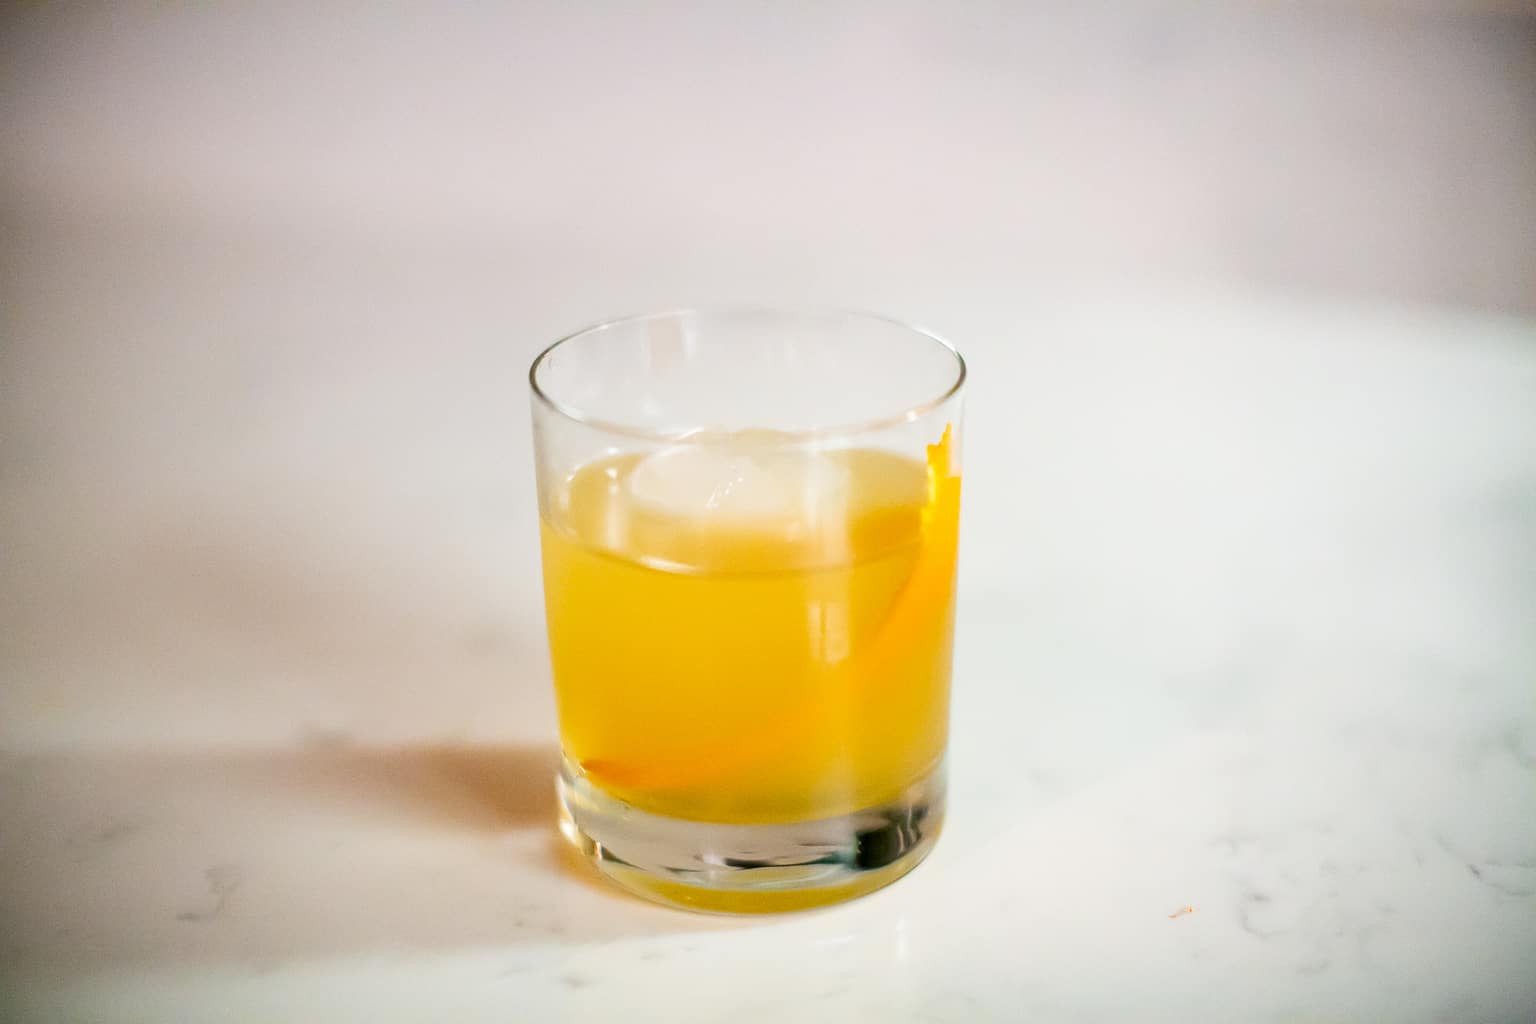 A glass of smoked tequila cocktail with lemon peel and ice